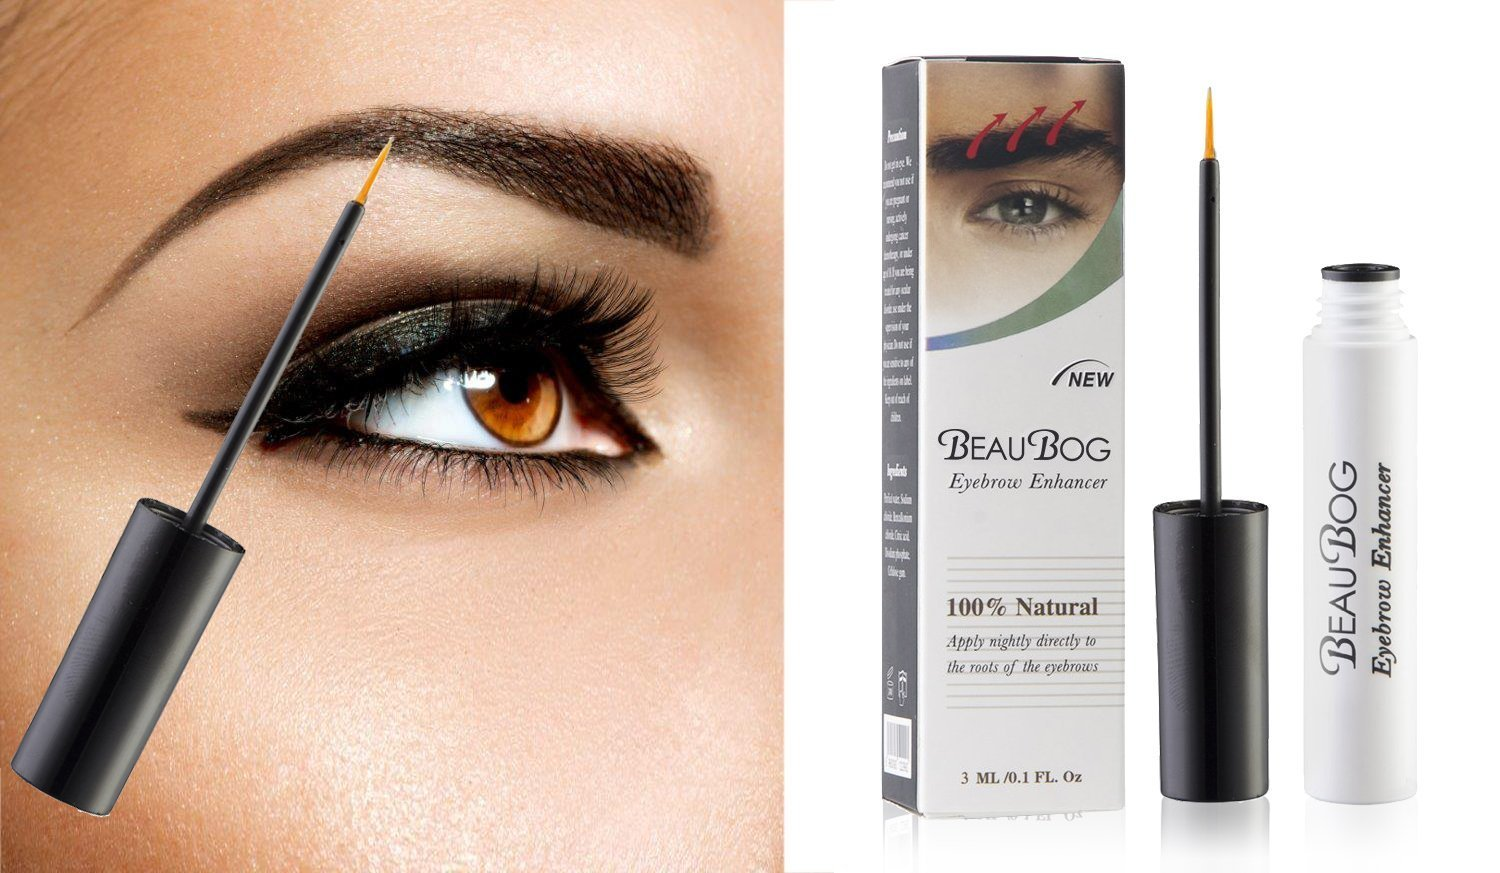 BeauBog TM Eyebrow Enhancer most powerful and advanced 100% Natural eyebrow growth Serum. Promote rapid growth and thickness of your eyebrows!!! BeauBog (TM)